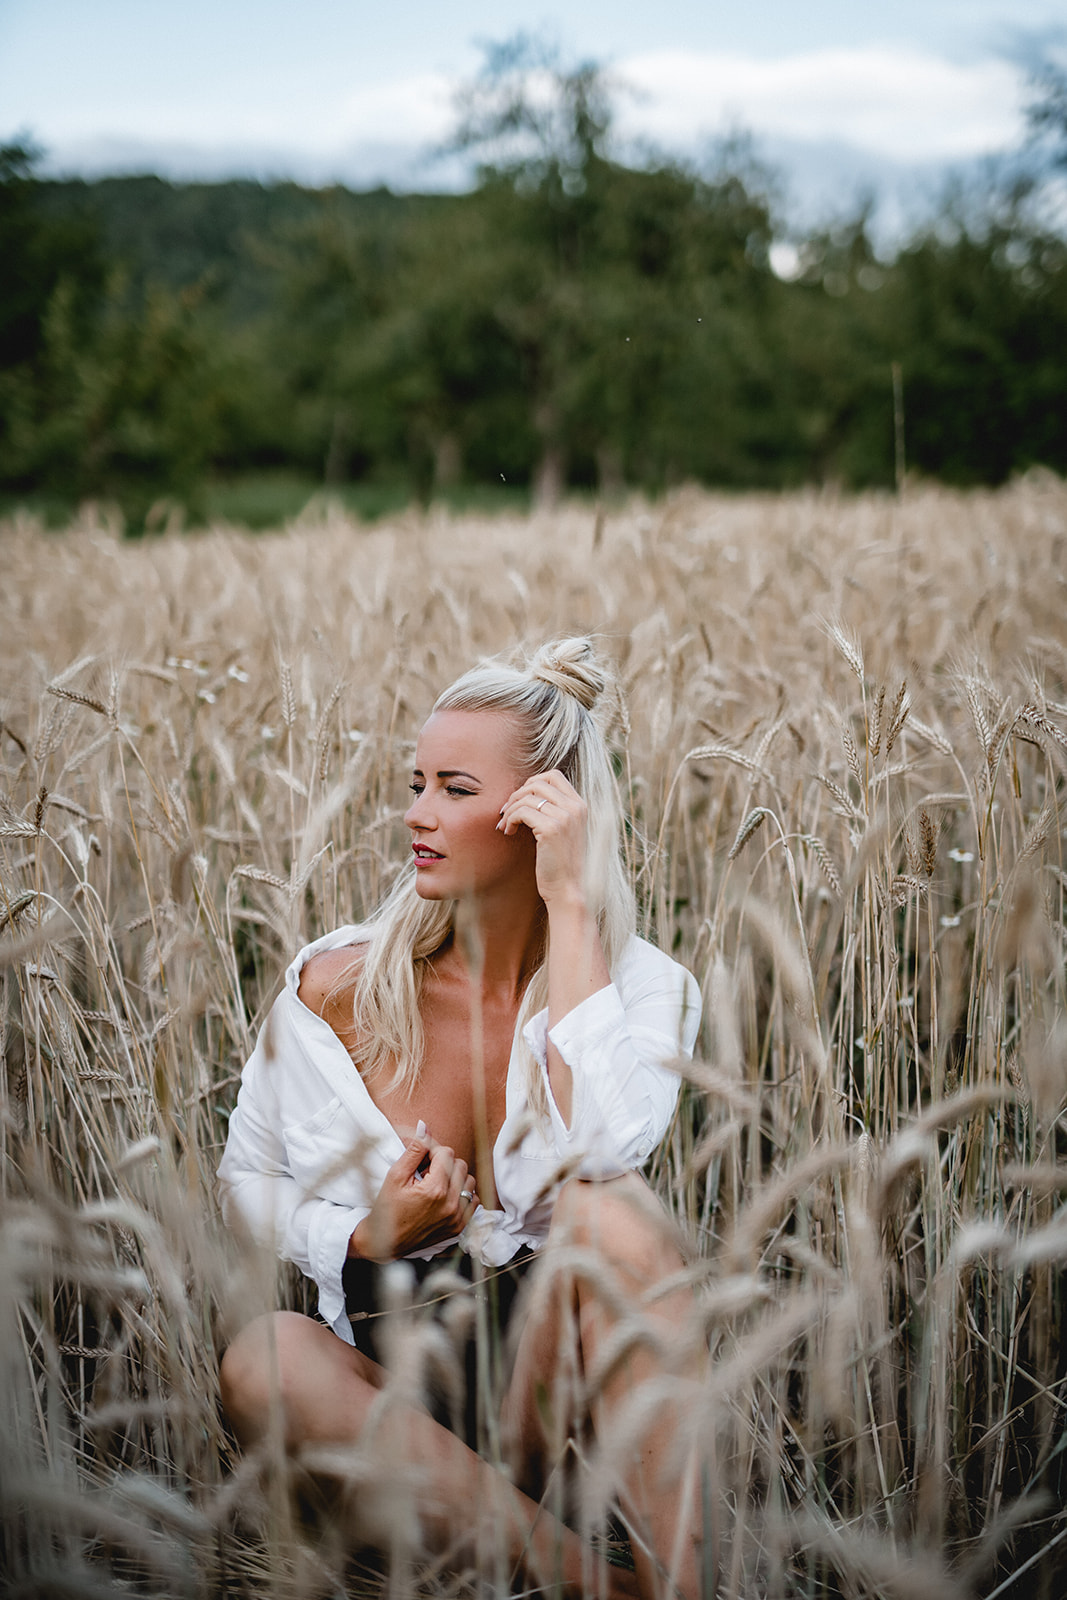 Model, Portrait, Shooting, Blond, Feld, Wald, Wiese, Portraitshooting, Modelshooting, Dj Almklausi, Maritta, Miss Stuttgart, Miss Baden-Württemberg, Misswahl, Maritta Krehl